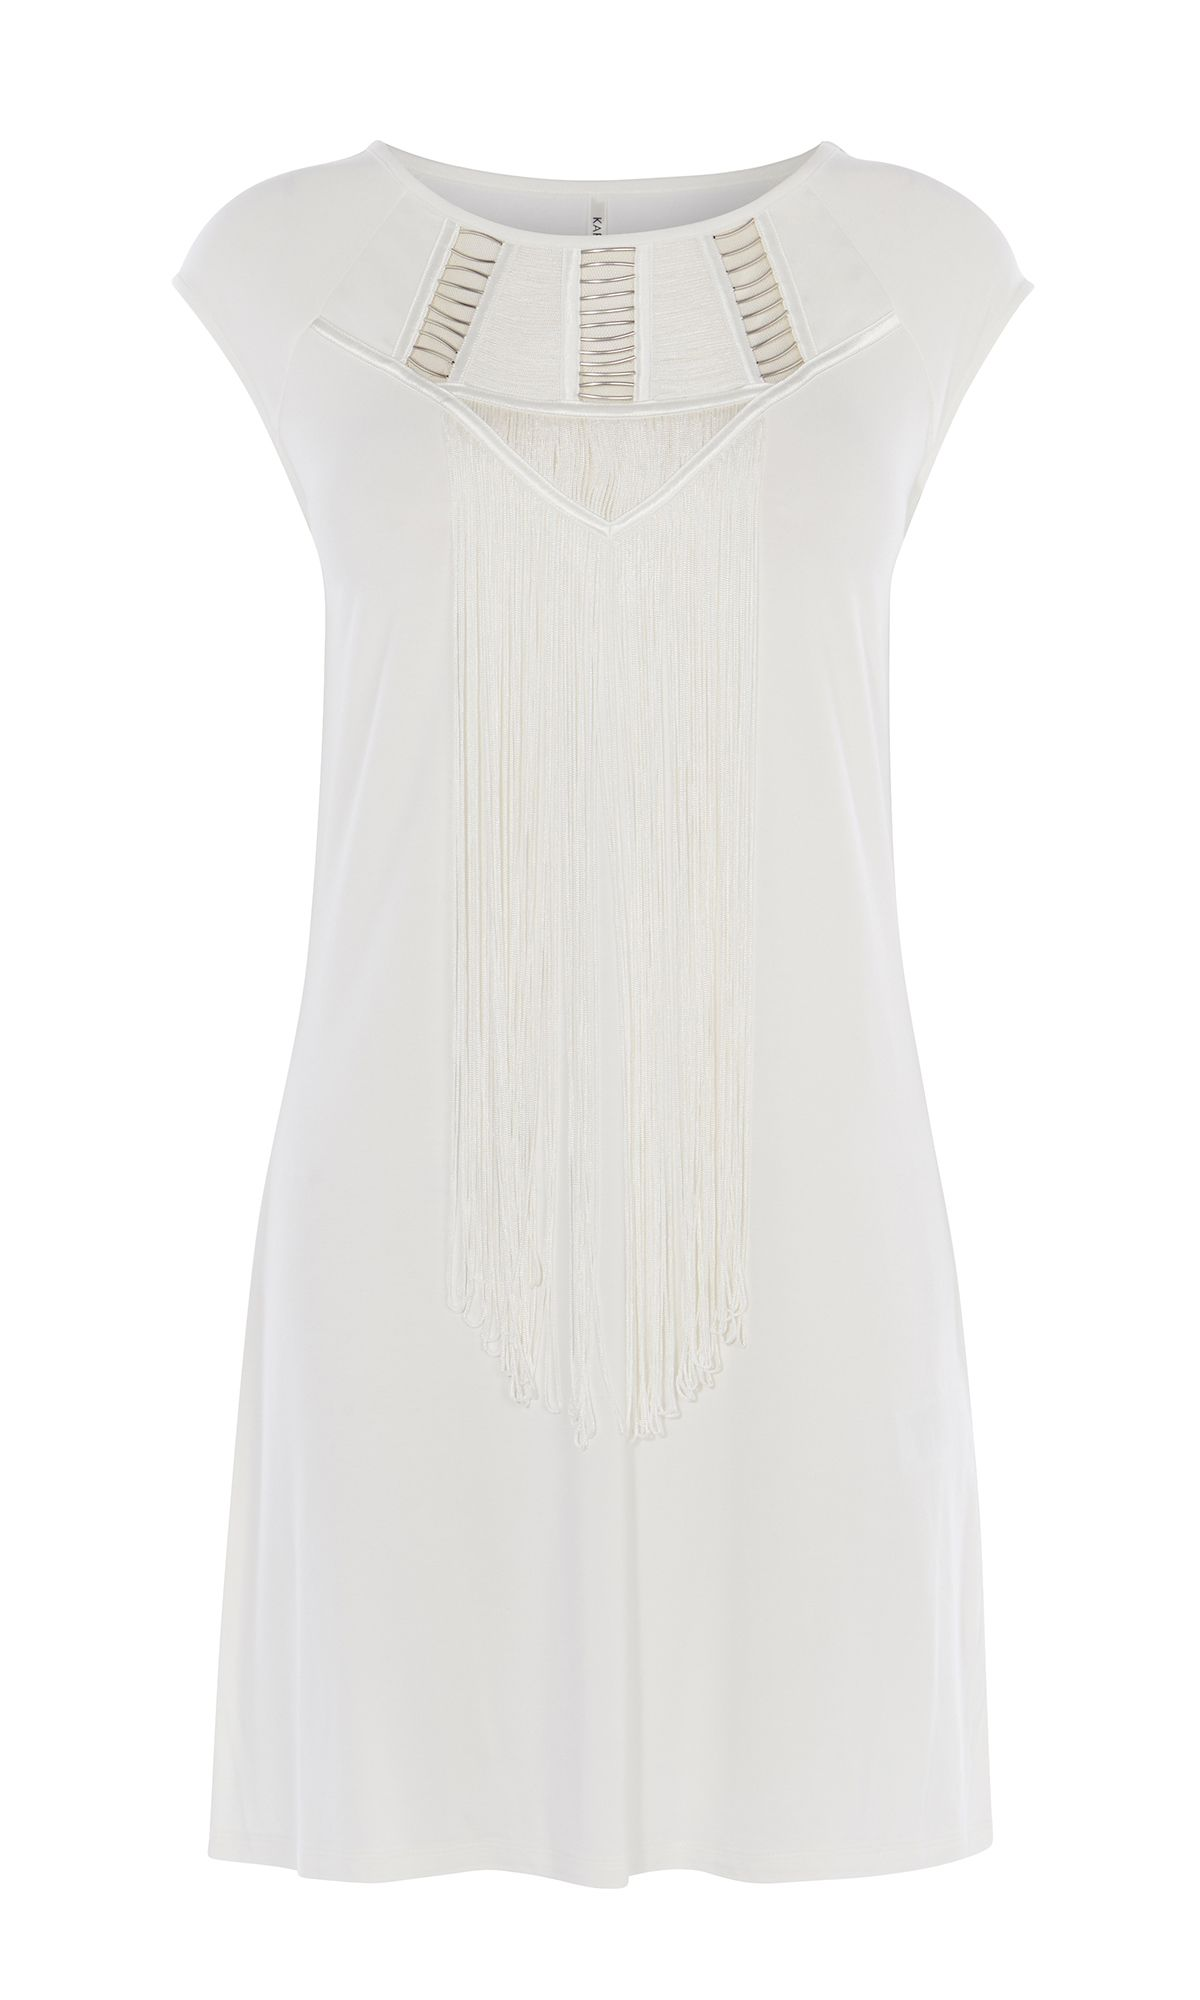 Karen Millen Tunic T-Shirt Dress, White